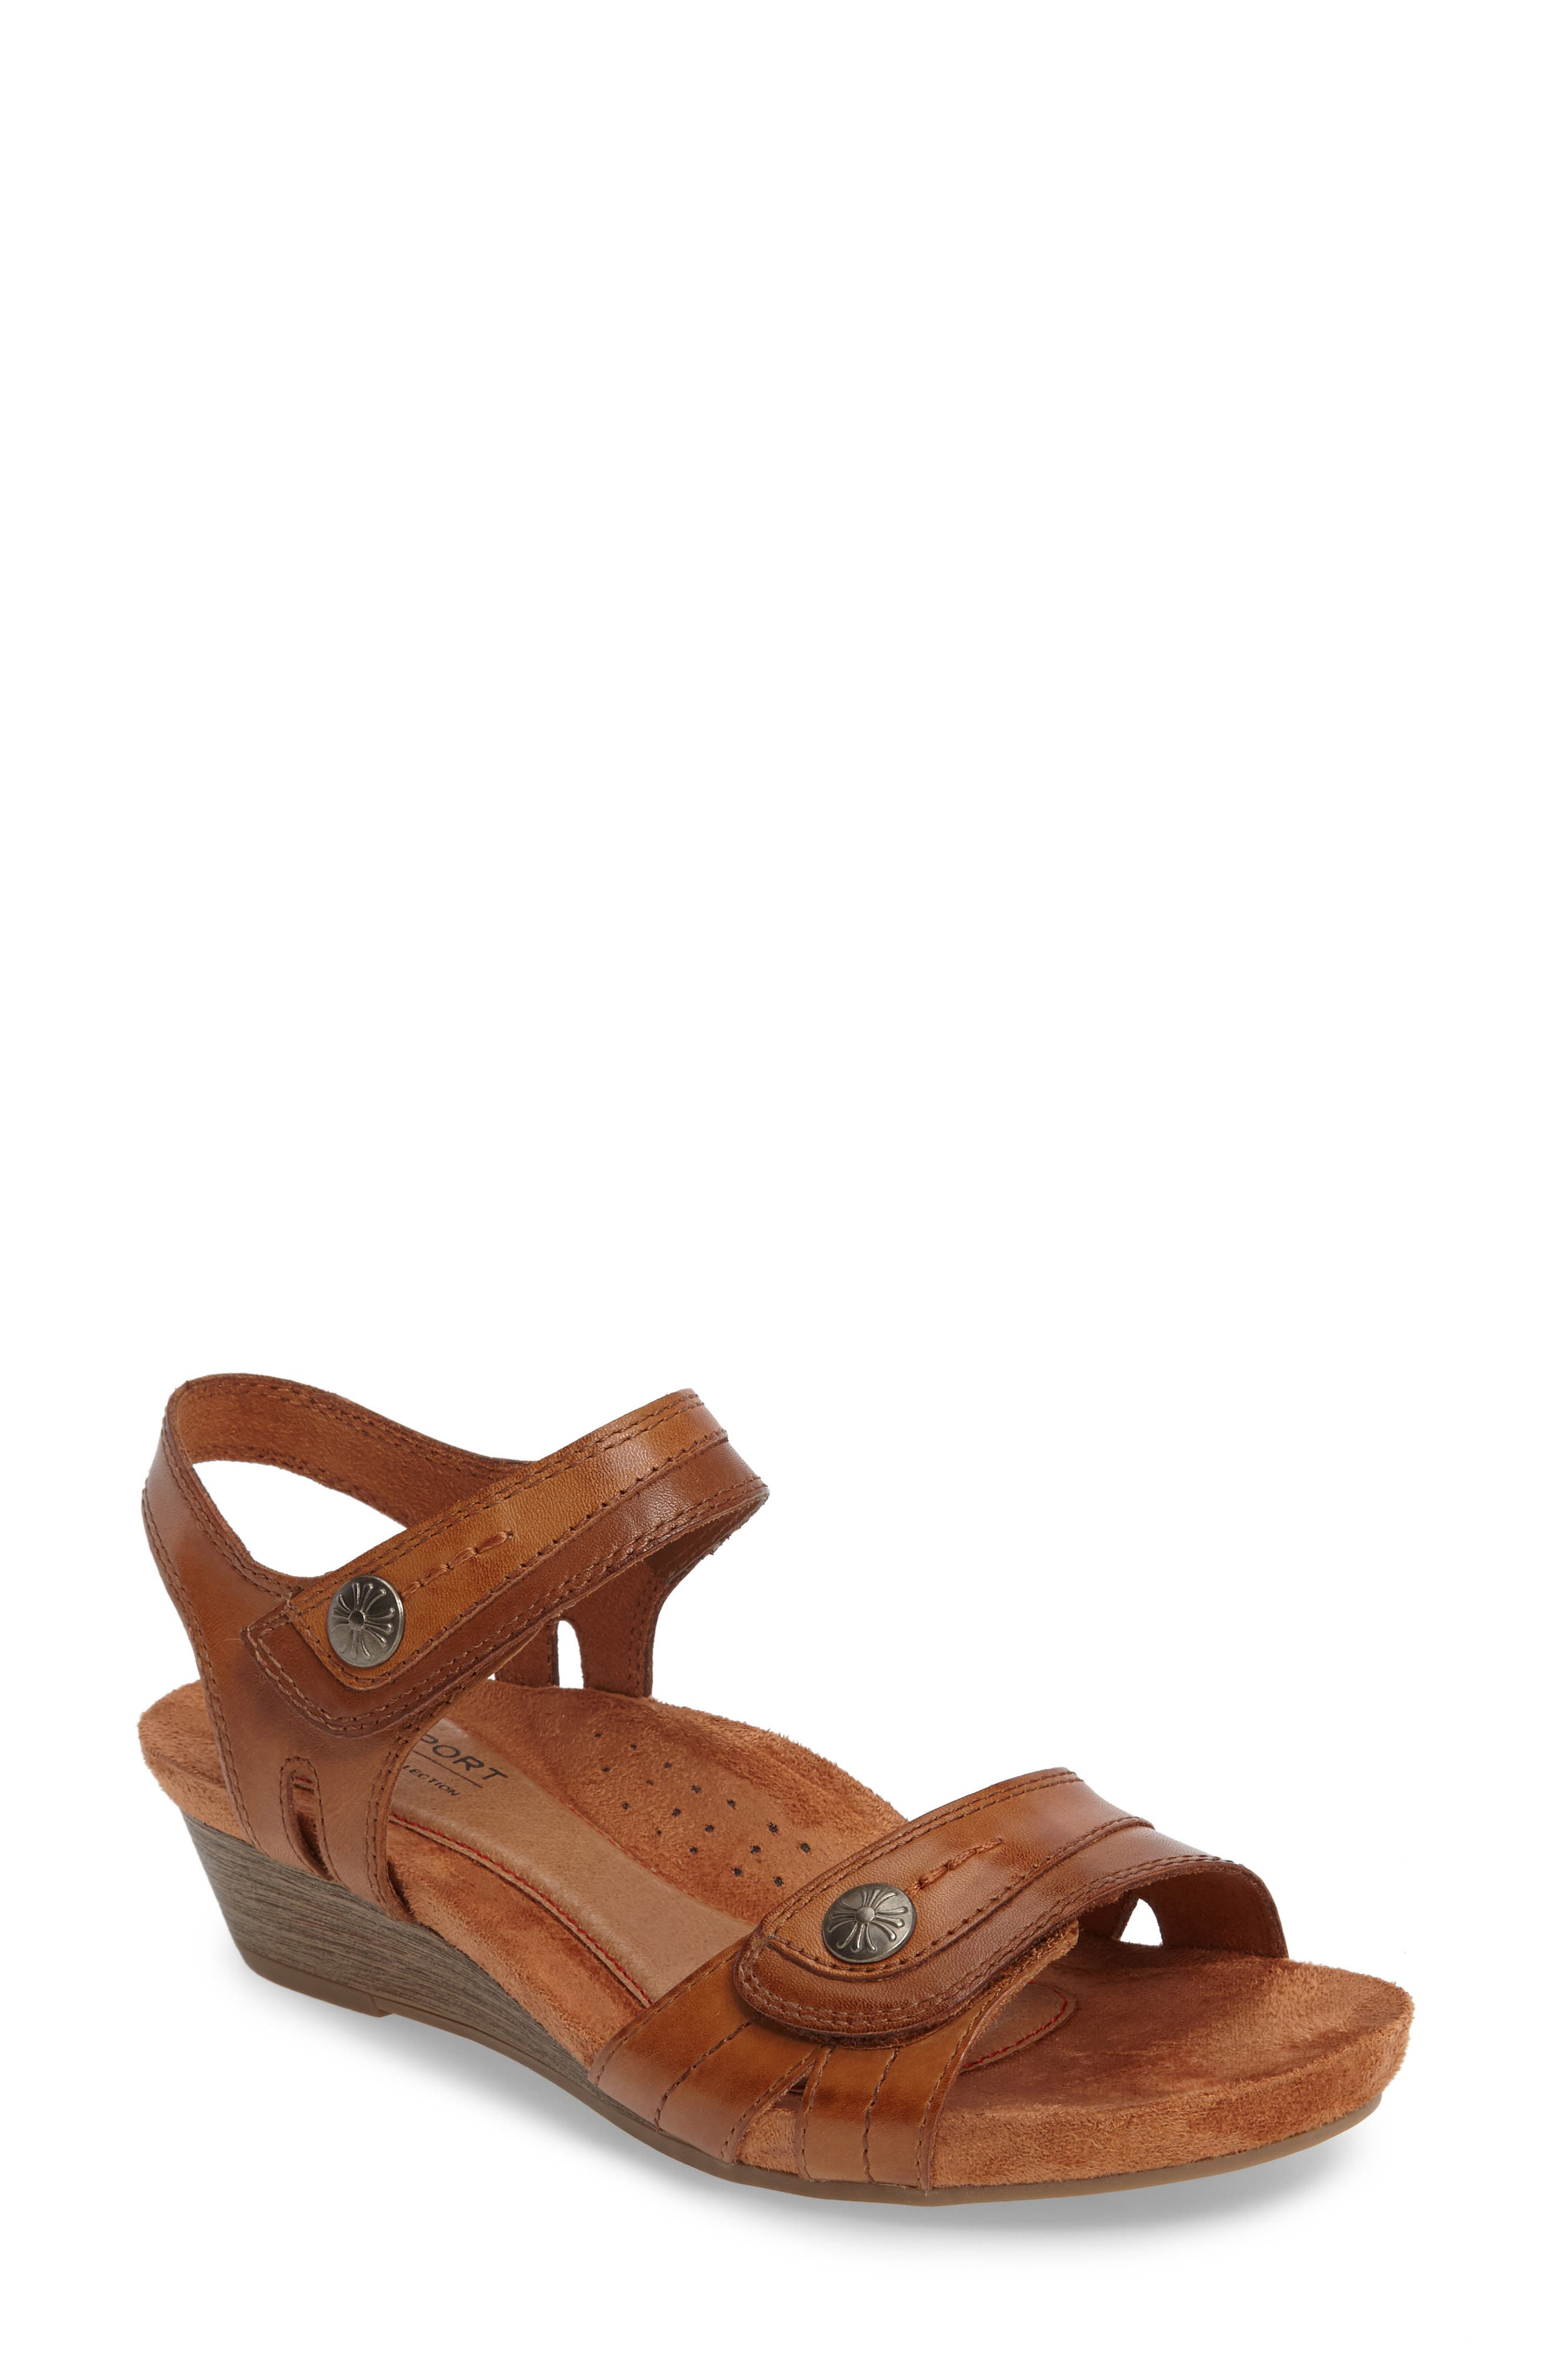 Main Image - Rockport Cobb Hill Hollywood Wedge Sandal (Women)